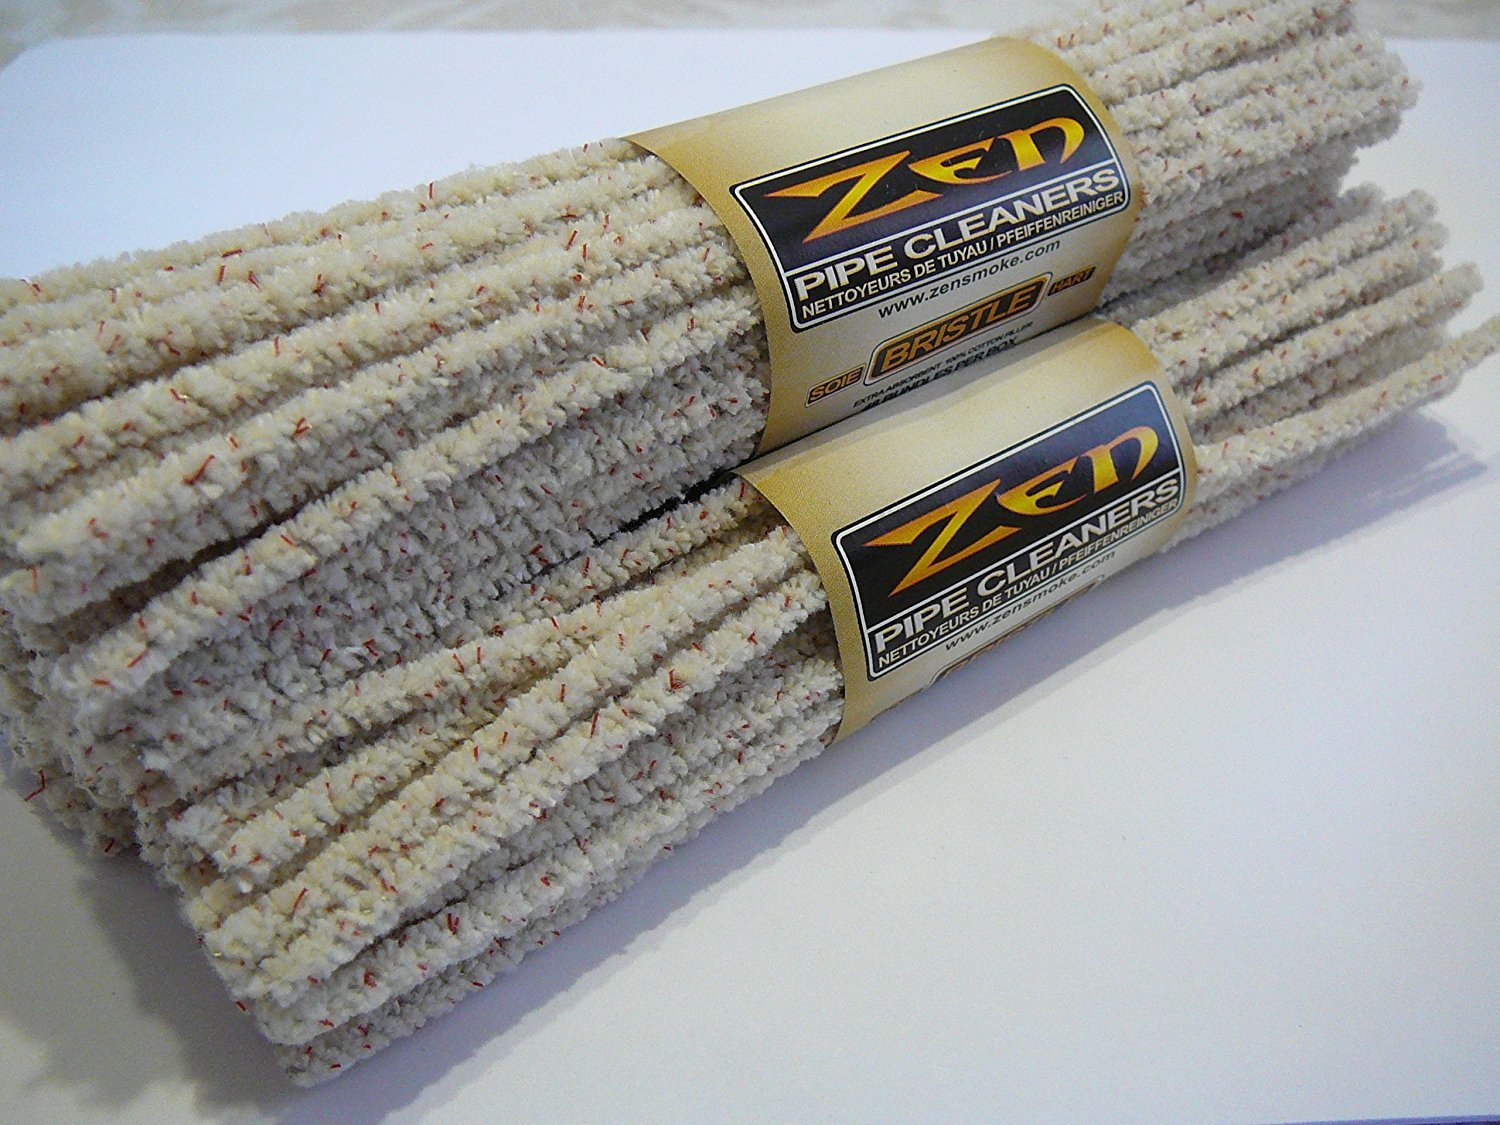 Amazon.com: 1 Bundle of ZEN Pipe Cleaners Soft Cleaner Wires - 48 ...